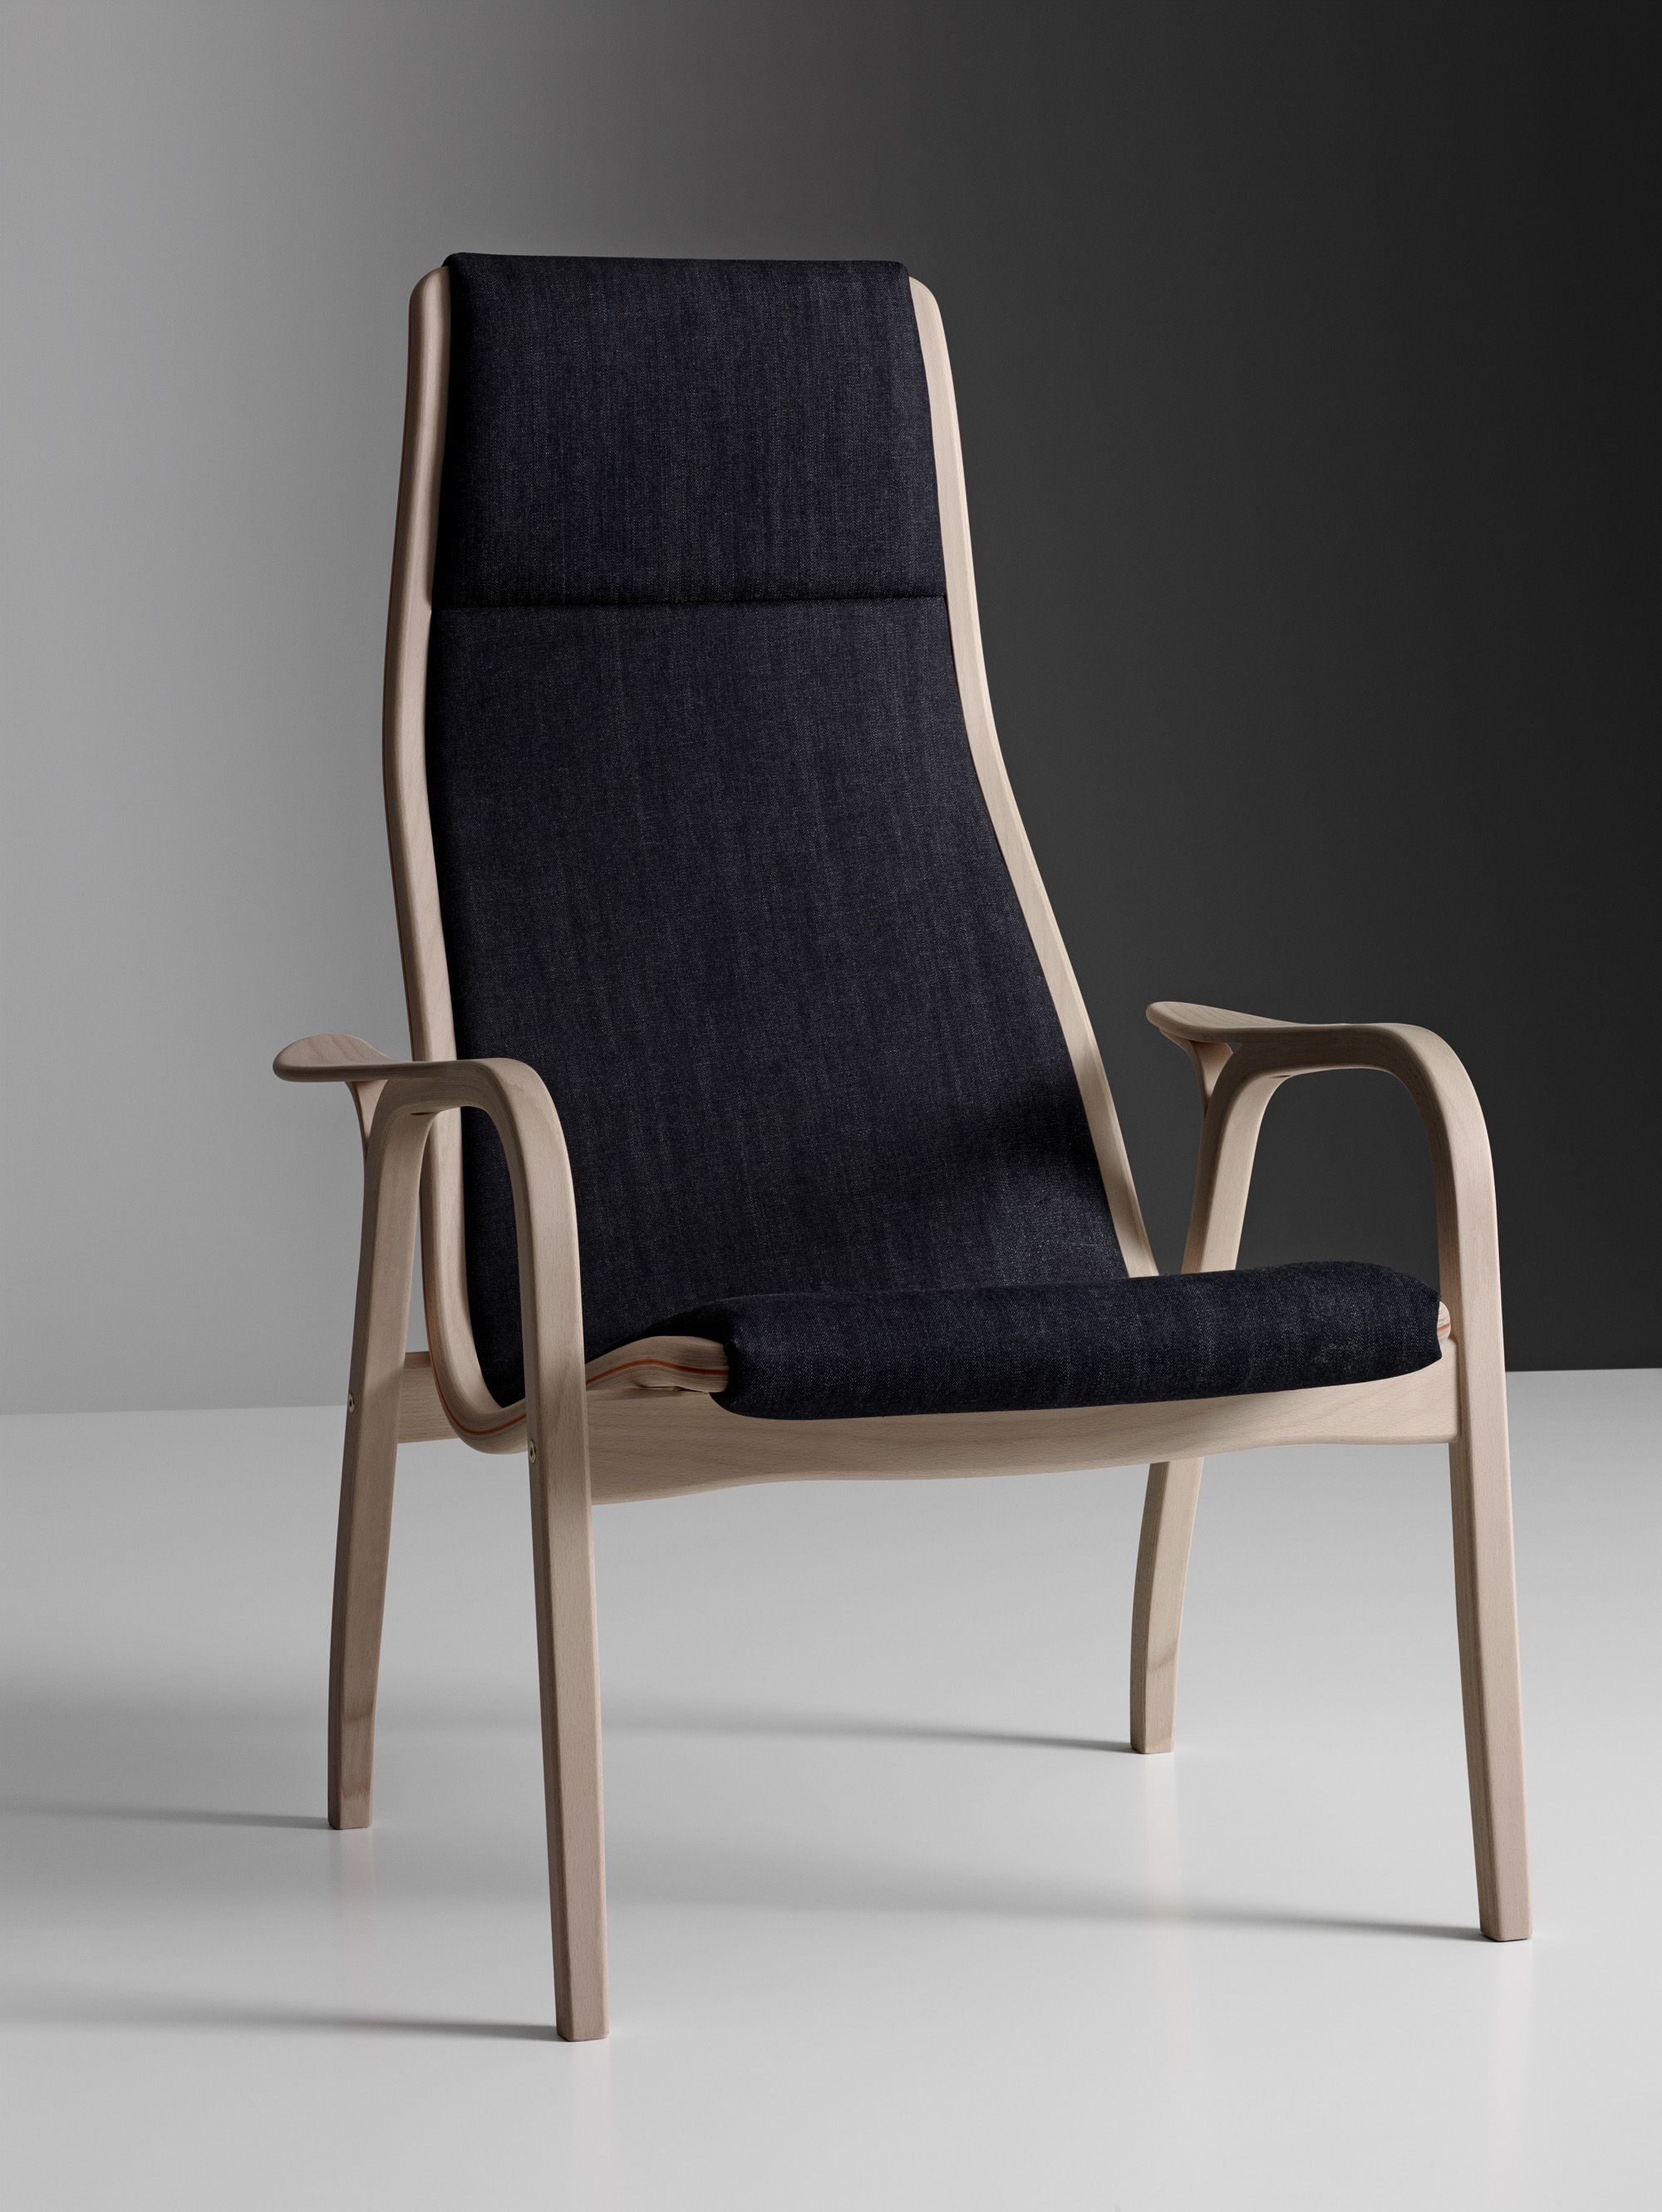 Muebles Easy Rosario - Lamino By Nudie Jeans Easy Chair By Yngve Ekstr M When [mjhdah]https://i.pinimg.com/736x/86/f0/d7/86f0d7306d3fd83ee15404d296f112f5.jpg